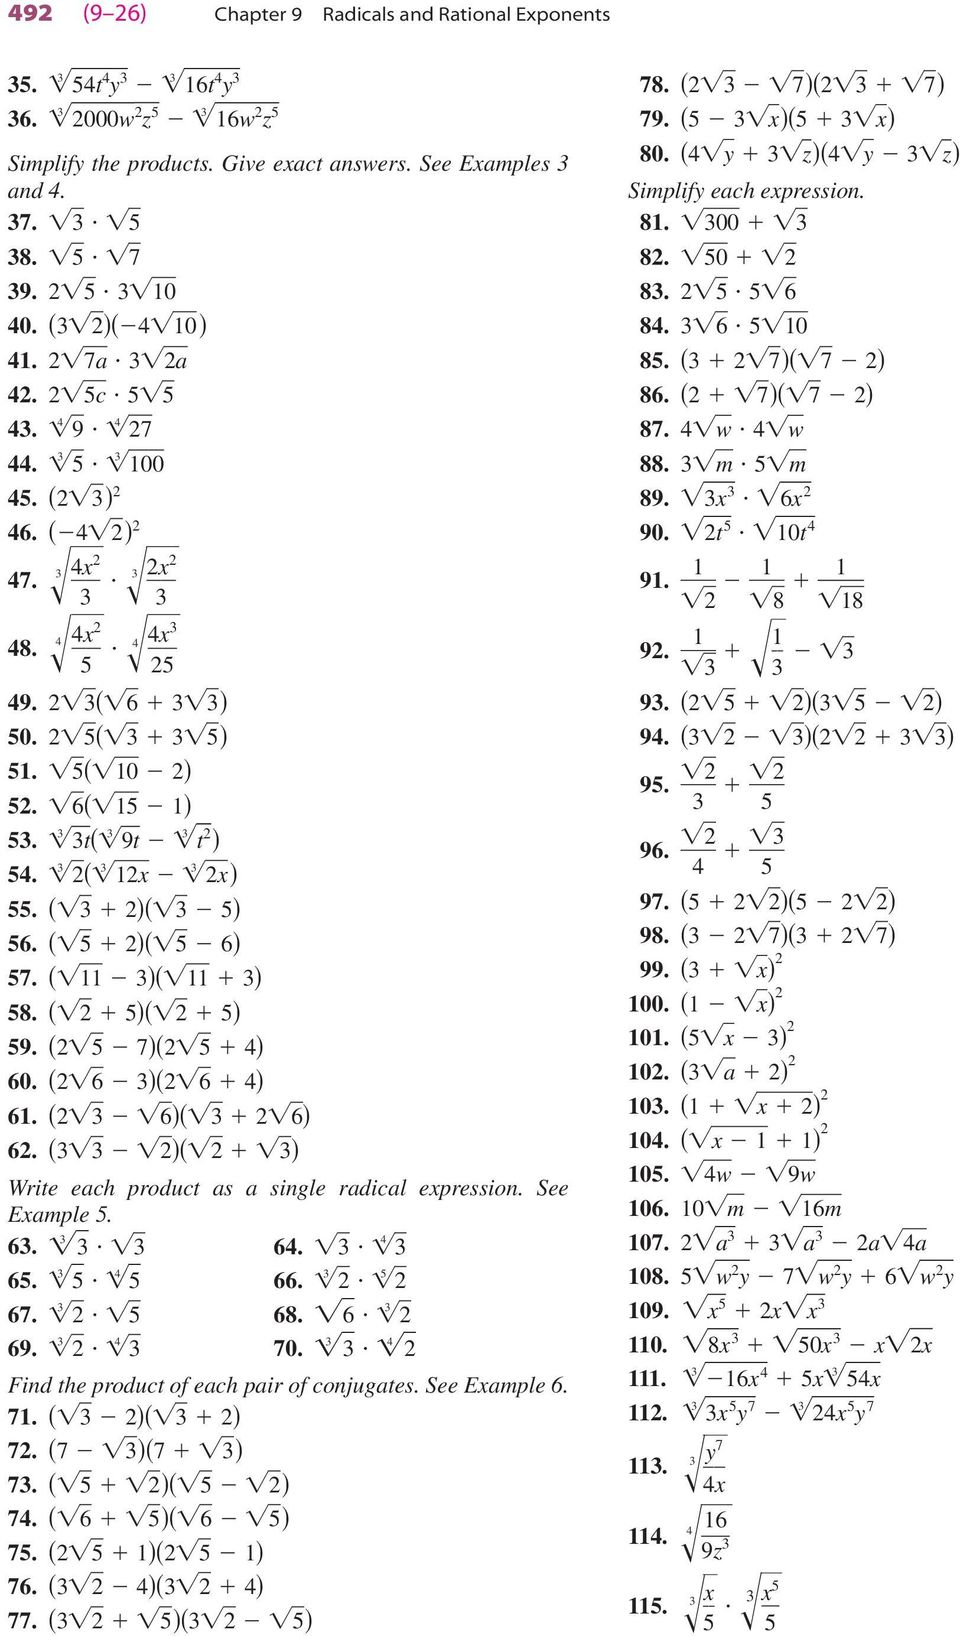 67. 68. 6 69. 70. Find the product of each pair of conjugates. See Eample 6. 71. ( )( ) 7. (7 )(7 ) 7. ( )( ) 7. (6 )(6 ) 7. ( 1)( 1) 76. ( )( ) 77. ( )( ) 78. ( 7)( 7) 79. ( )( ) 80.